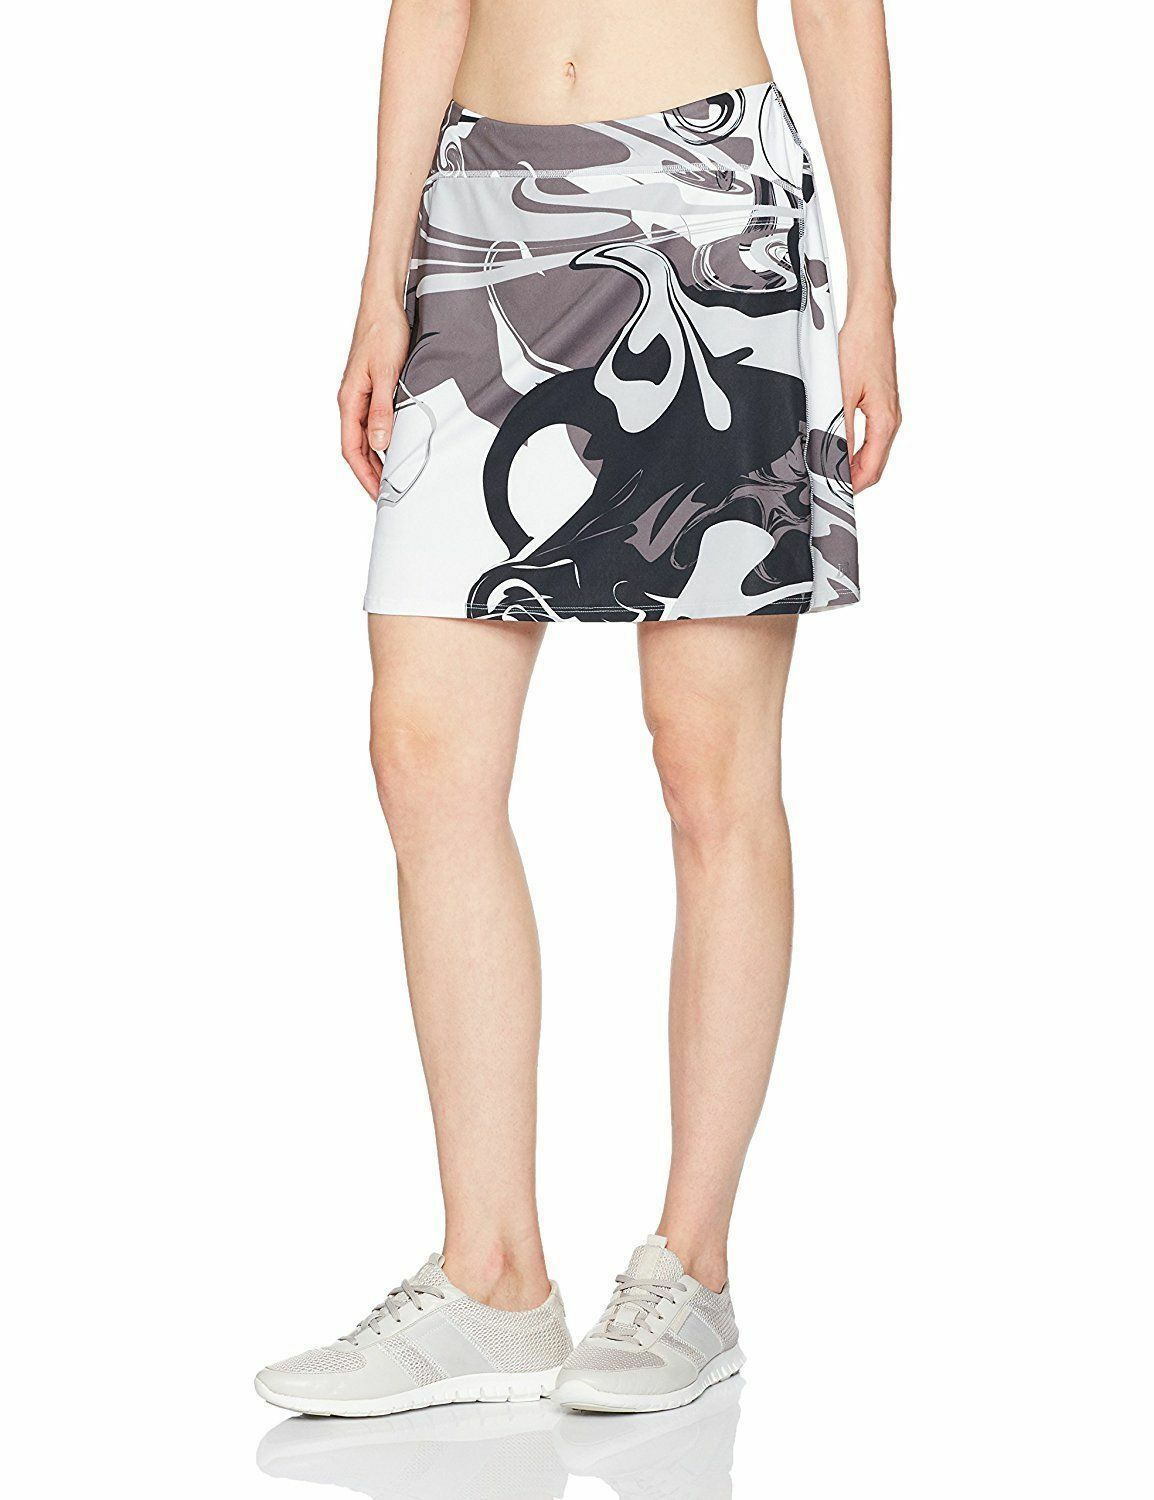 Skirt Sports Womens Happy Girl Skirt, Persevere Print Size Small